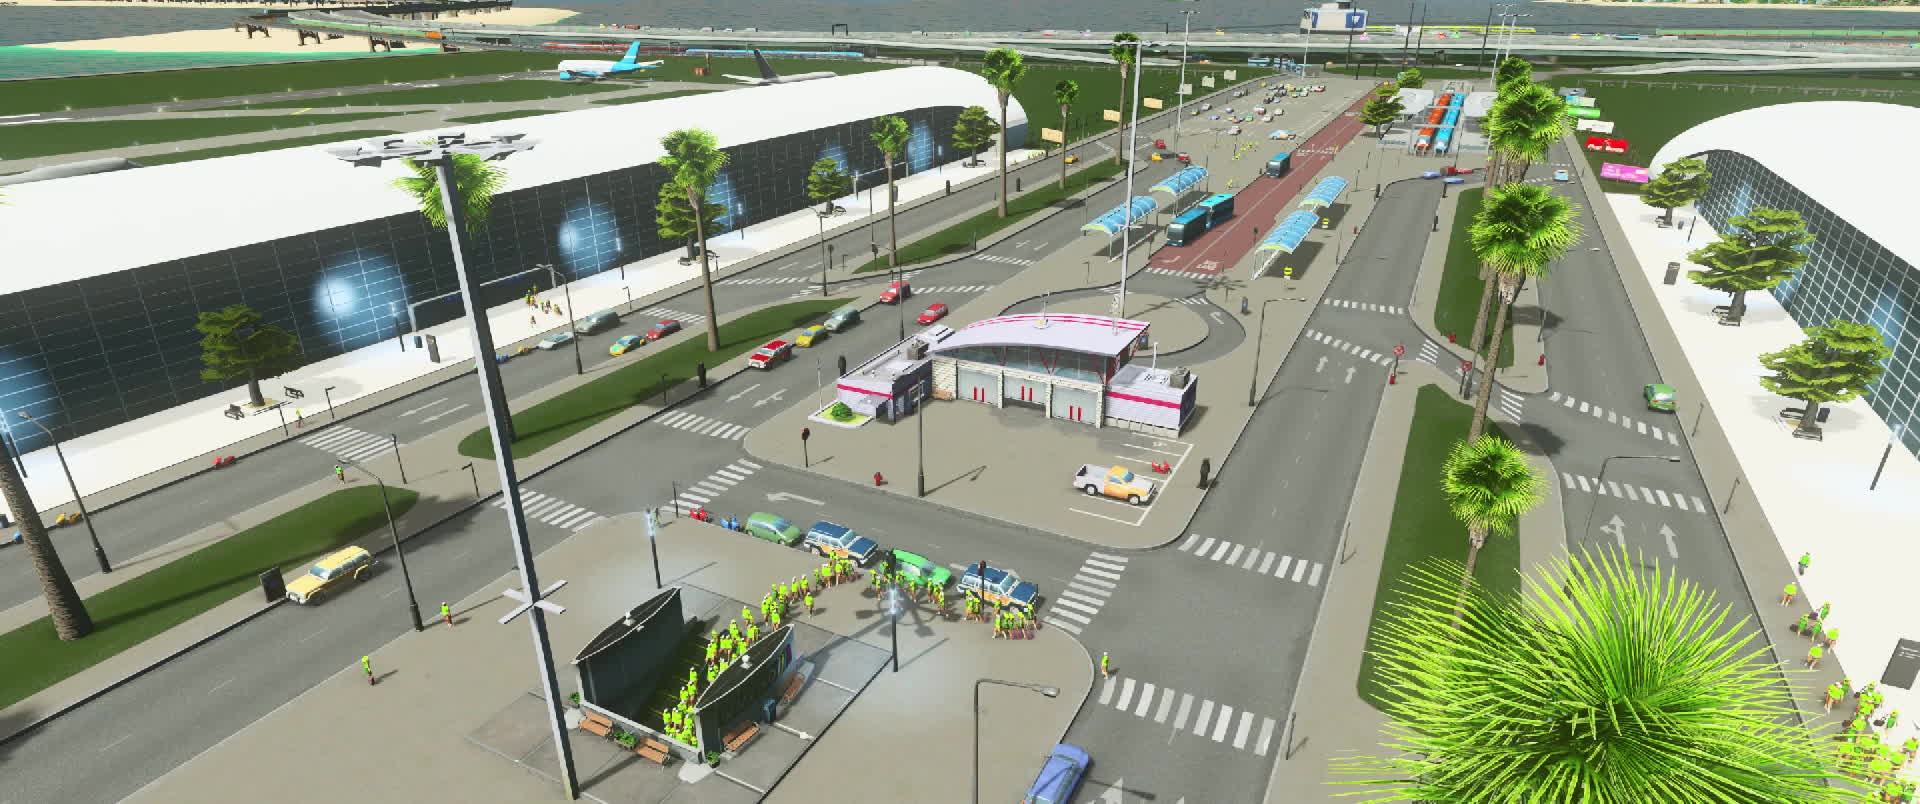 citiesskylines, Howie Islands - Airport Timelapse 2 GIFs